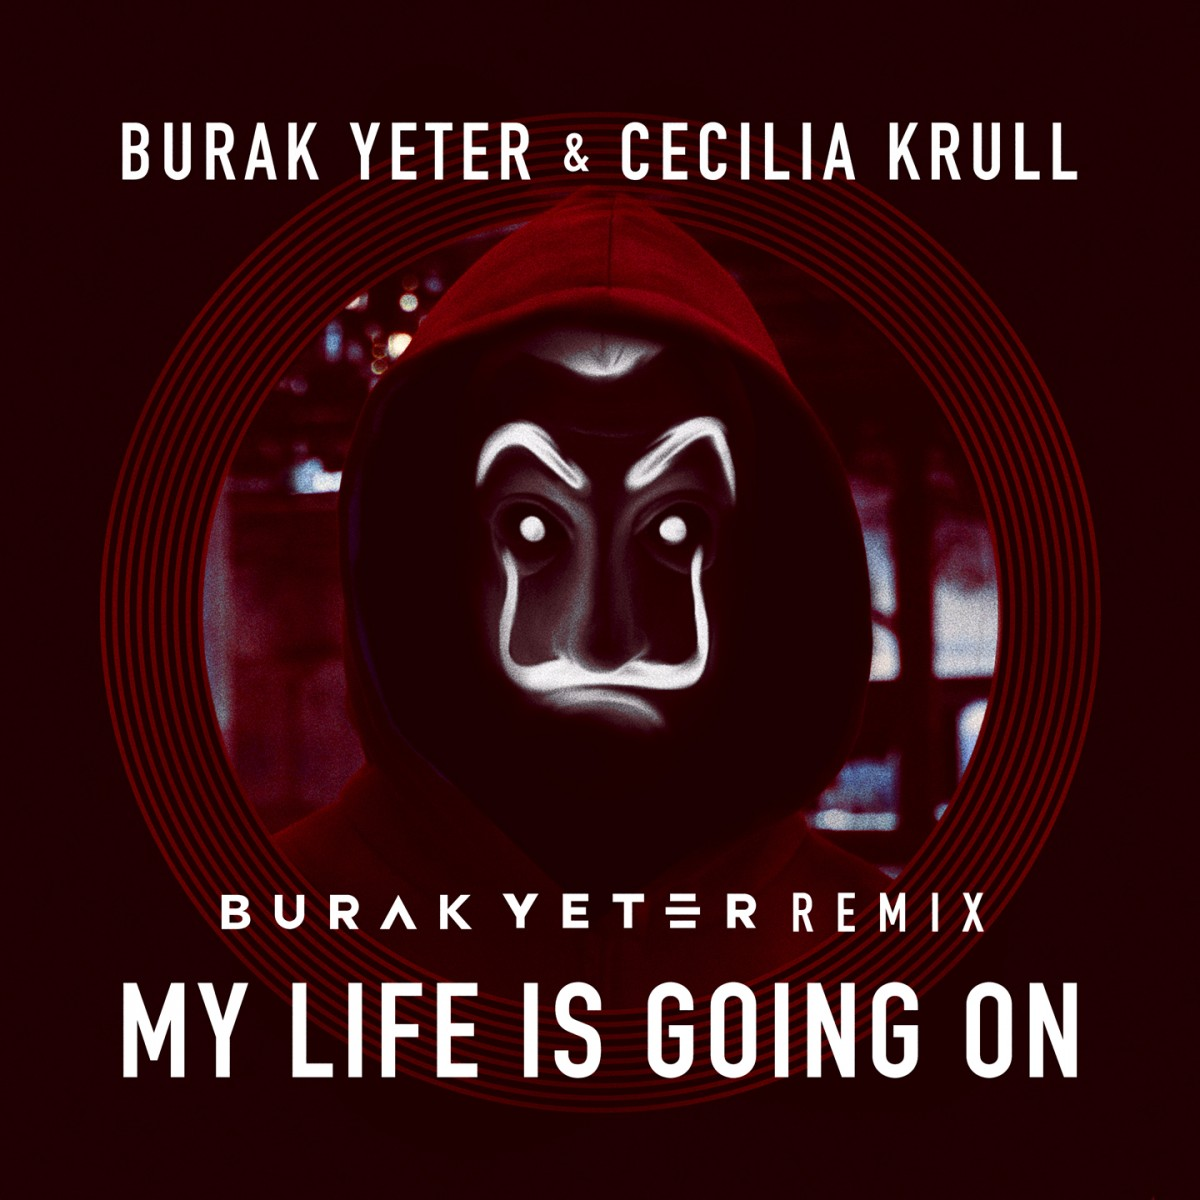 BURAK YETER & CECILIA KRULL - MY LIFE IS GOING ON